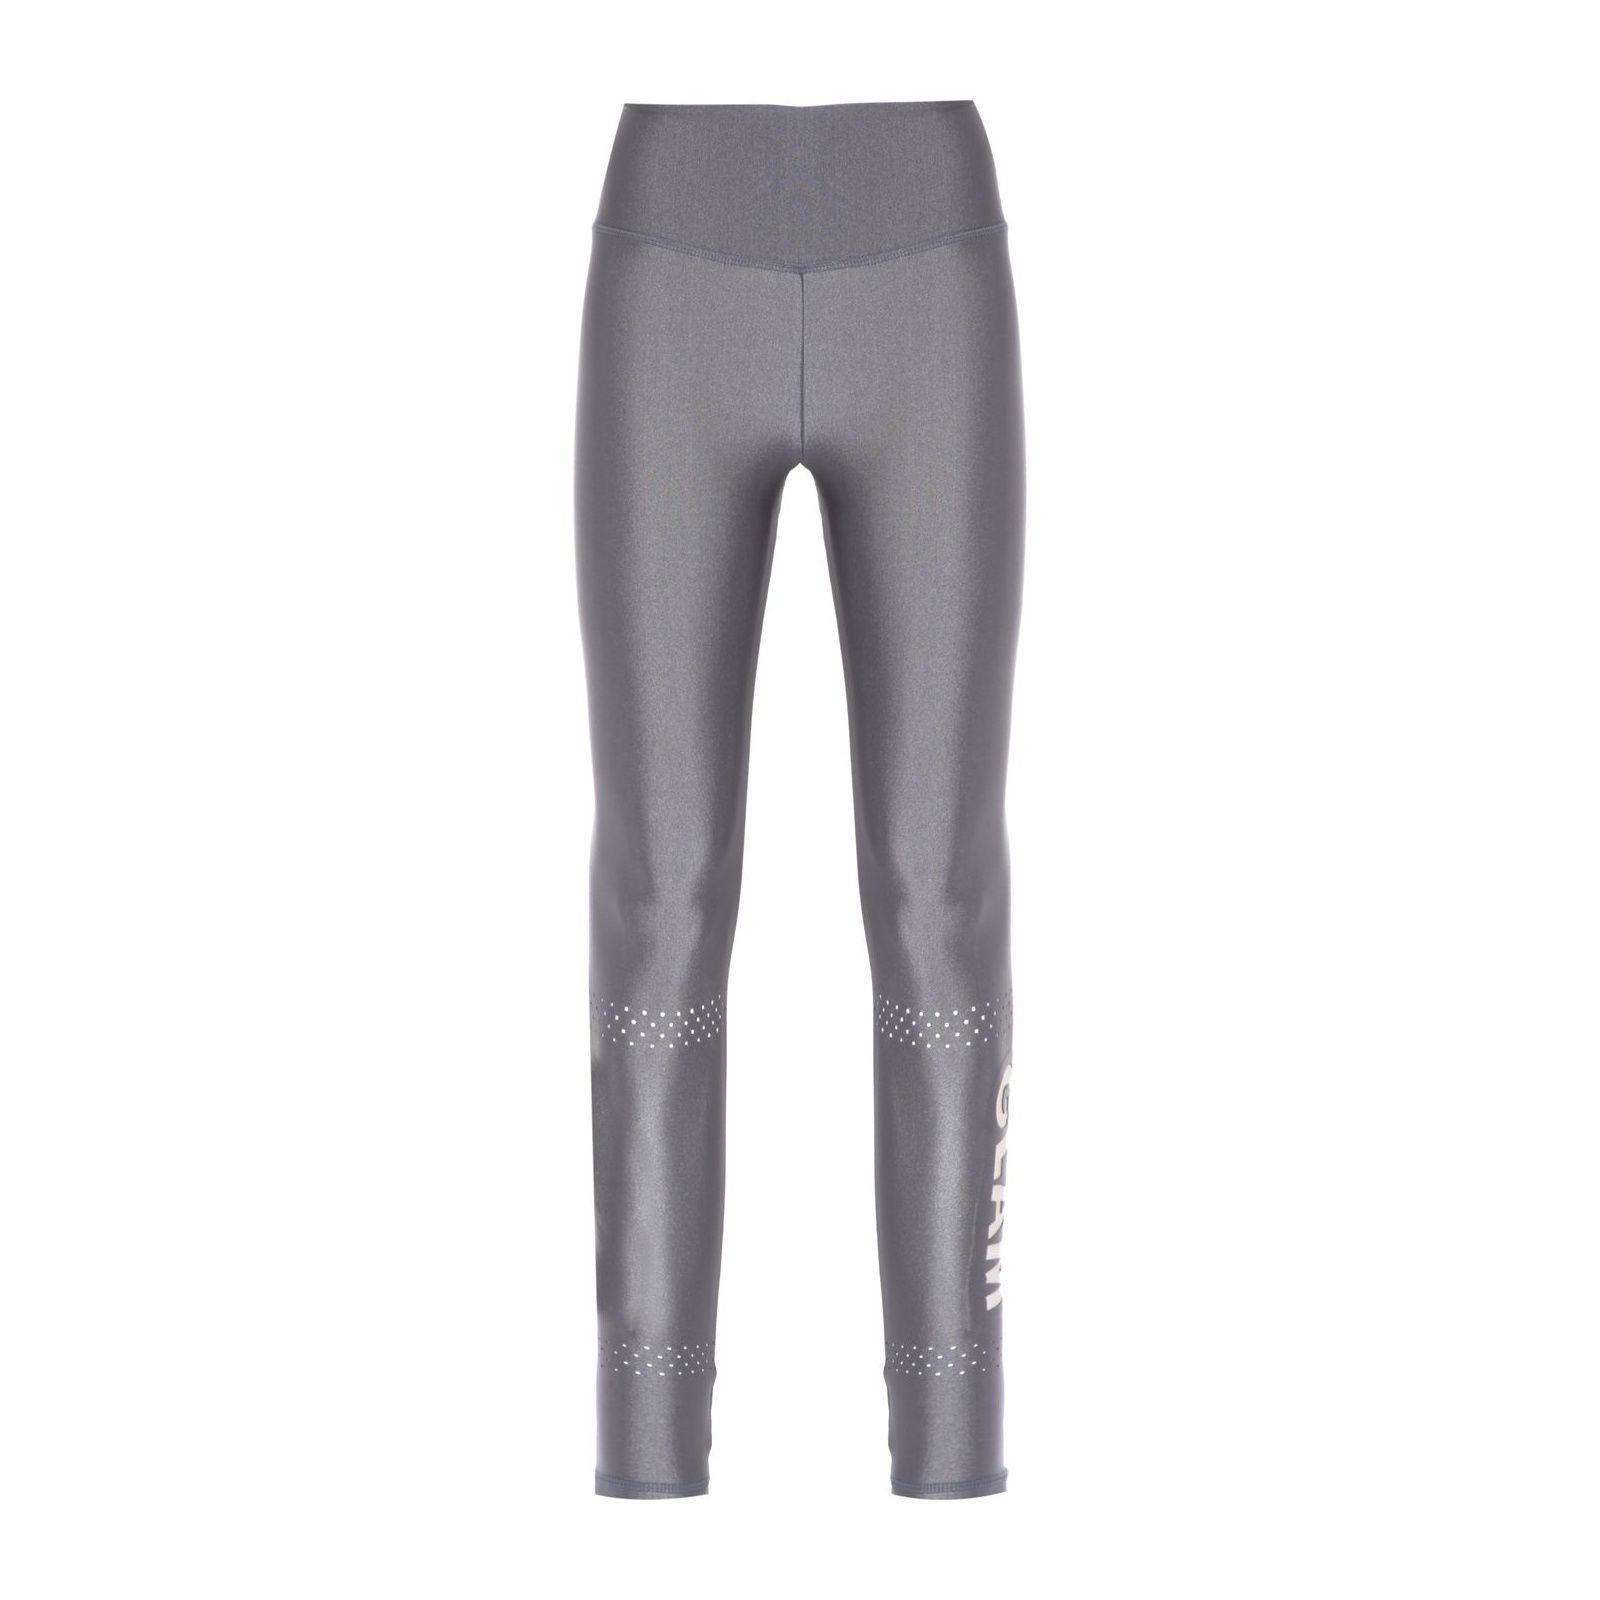 Legging Glam By Nati Vozza - Cinza